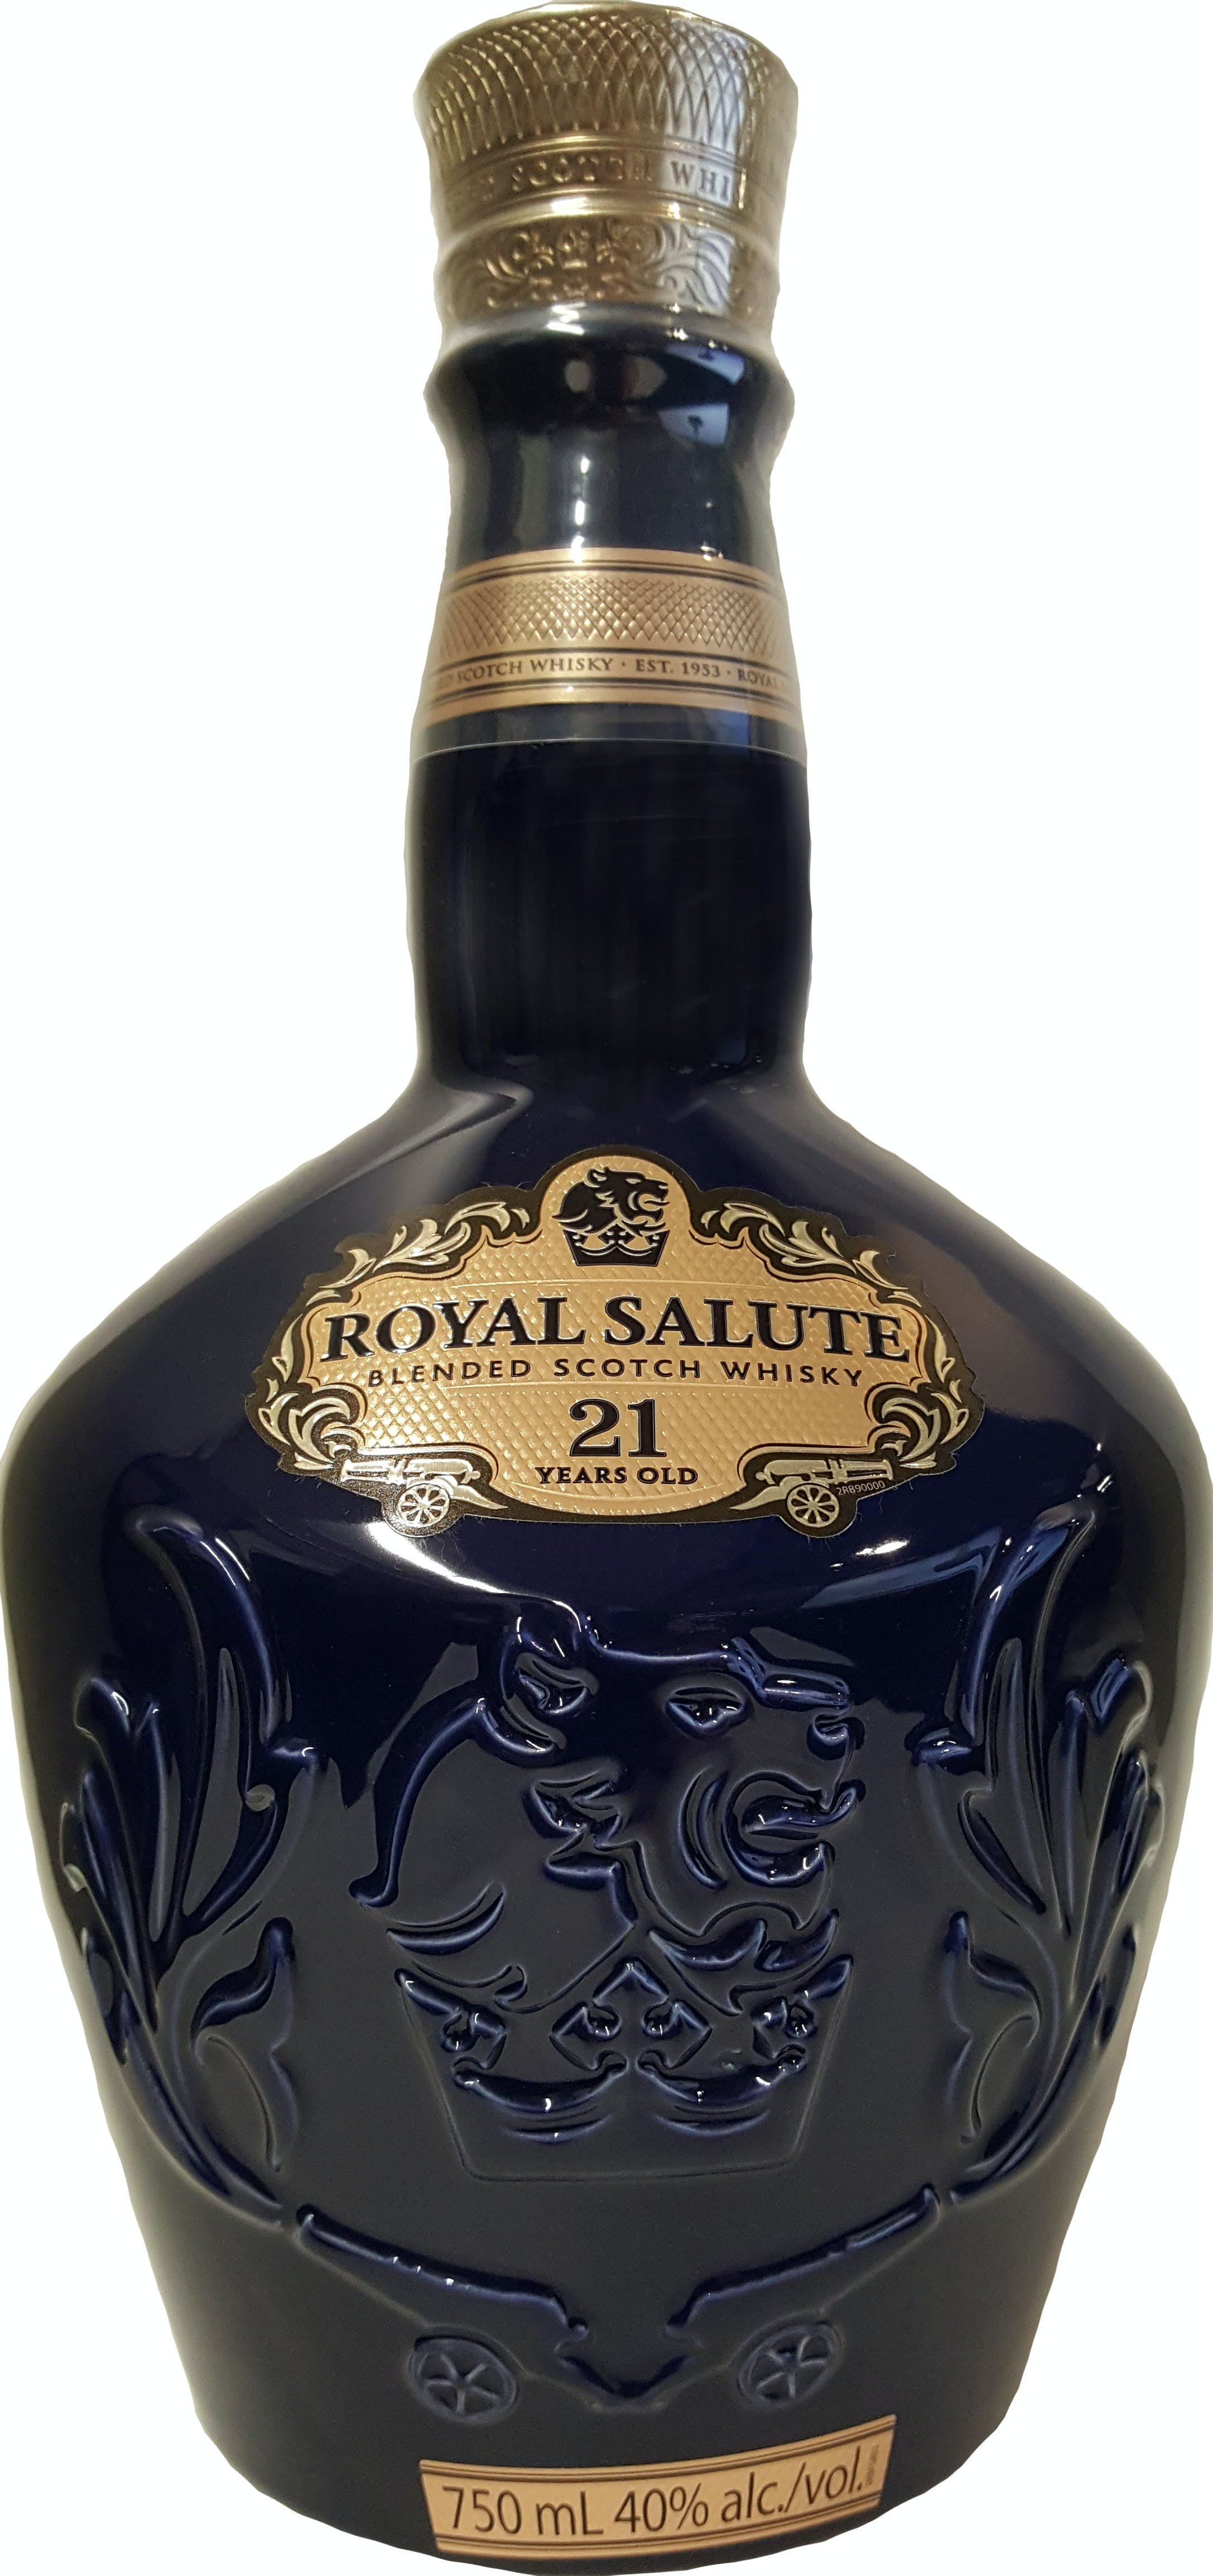 f2348b7842c4 Chivas Regal Royal Salute Blended Scotch Whisky 21 year old - Canal's of  Berlin